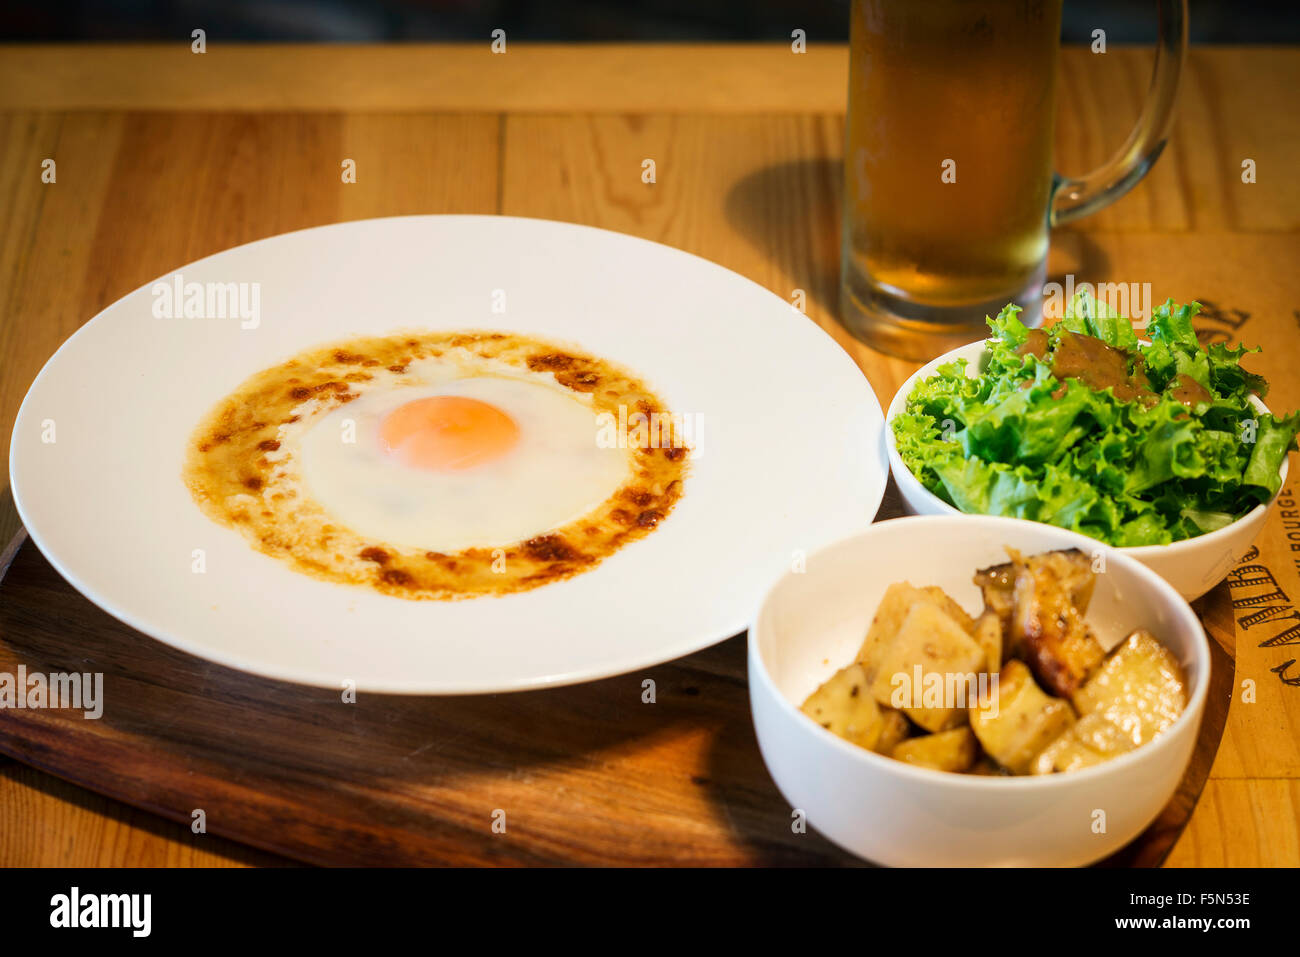 northern france local specialty dish the welsh with meat, egg and melted cheese - Stock Image